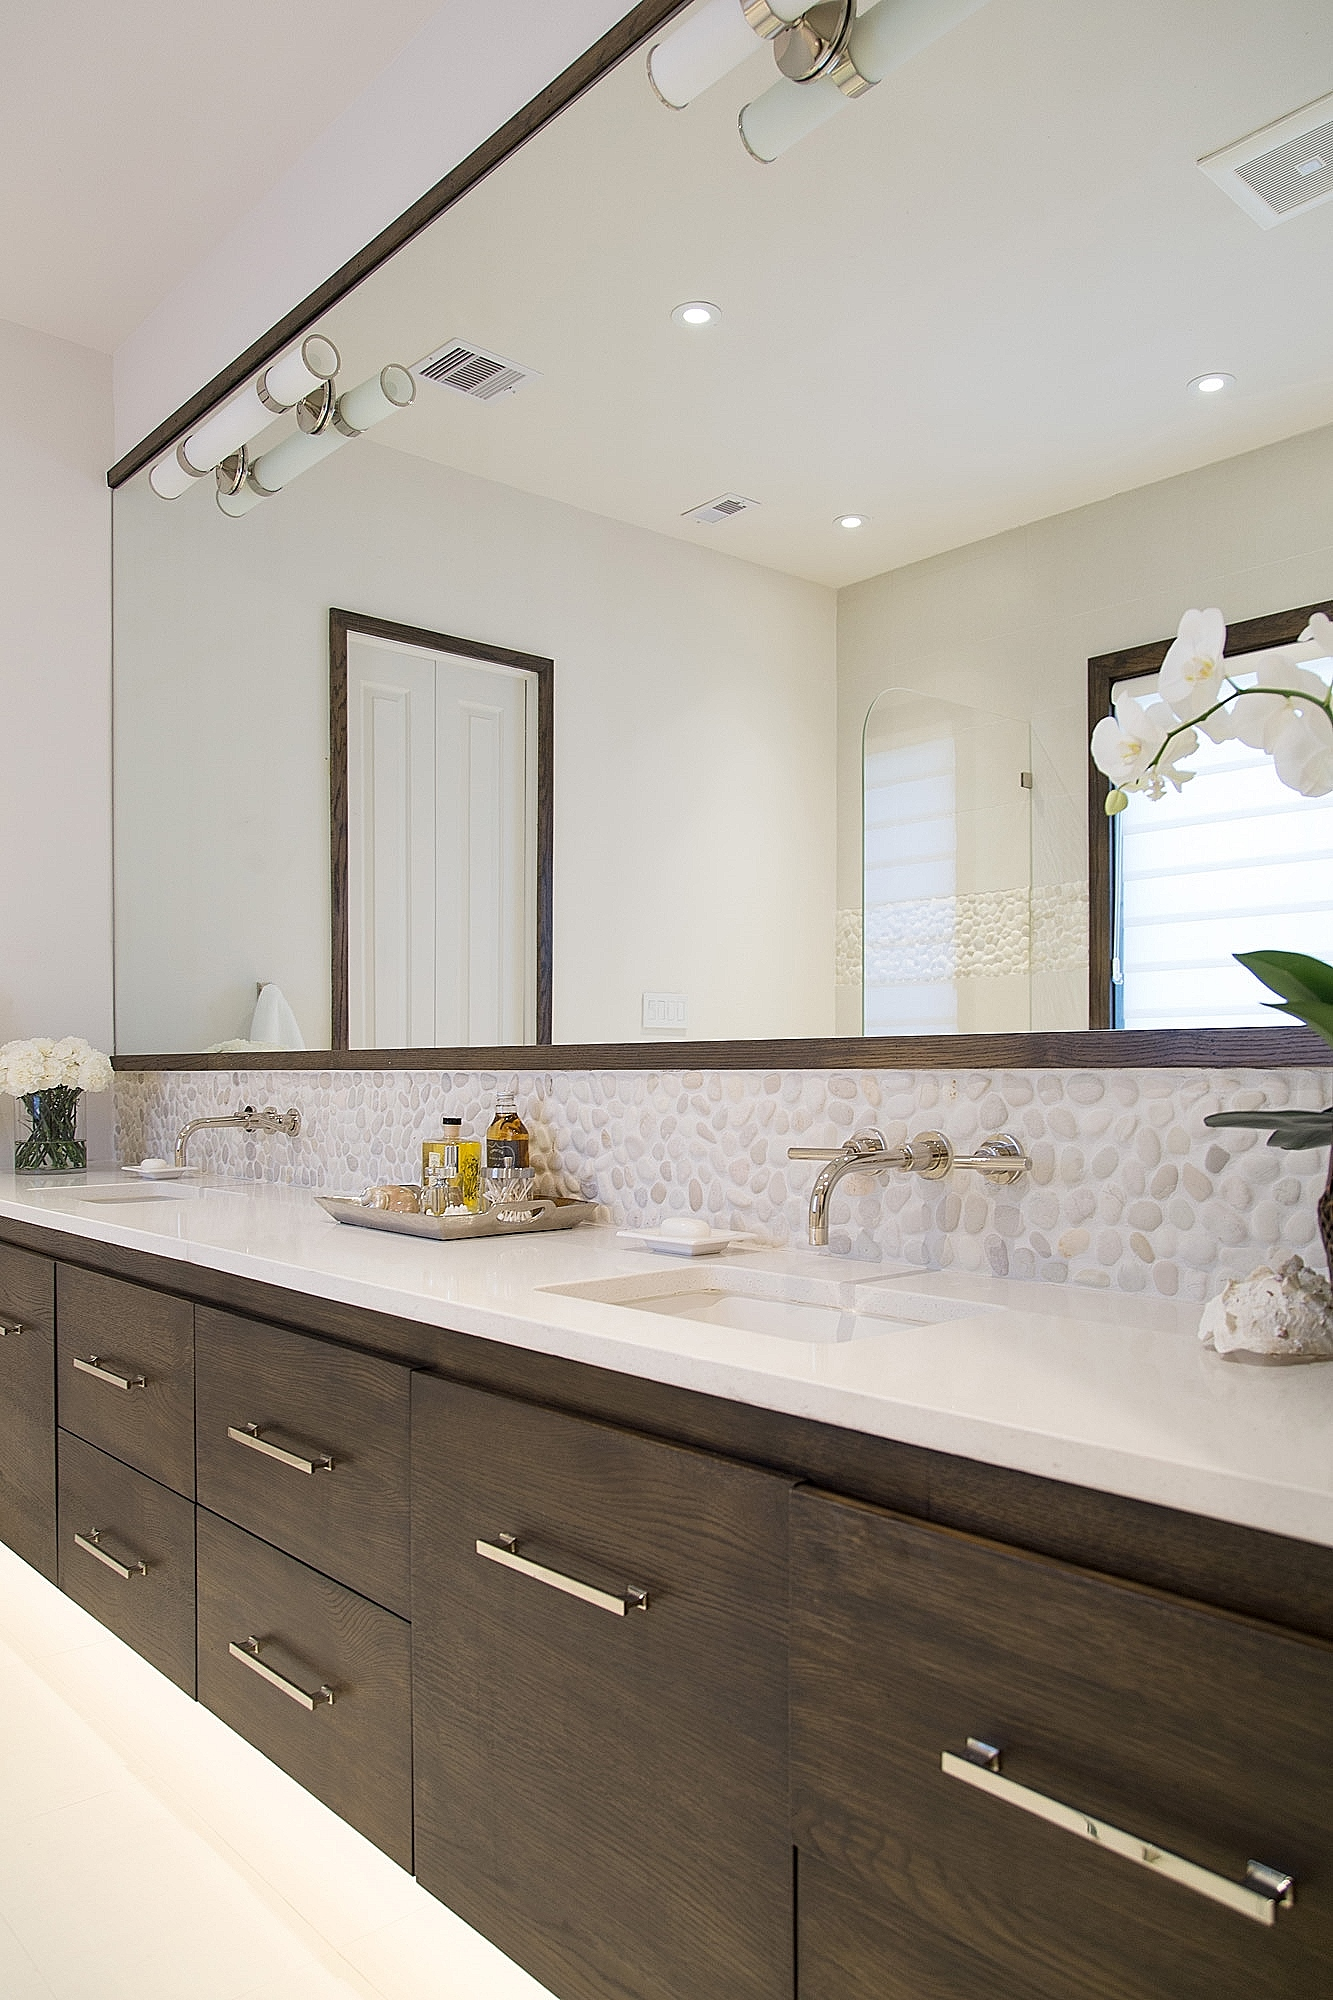 Floating linear look bathroom vanity in stained rift cut oak gives an open and more modern look in this remodel. Carla Aston, Designer | Tori Aston, Photographer #floatingvanity #riftcutoak #modernbathroom